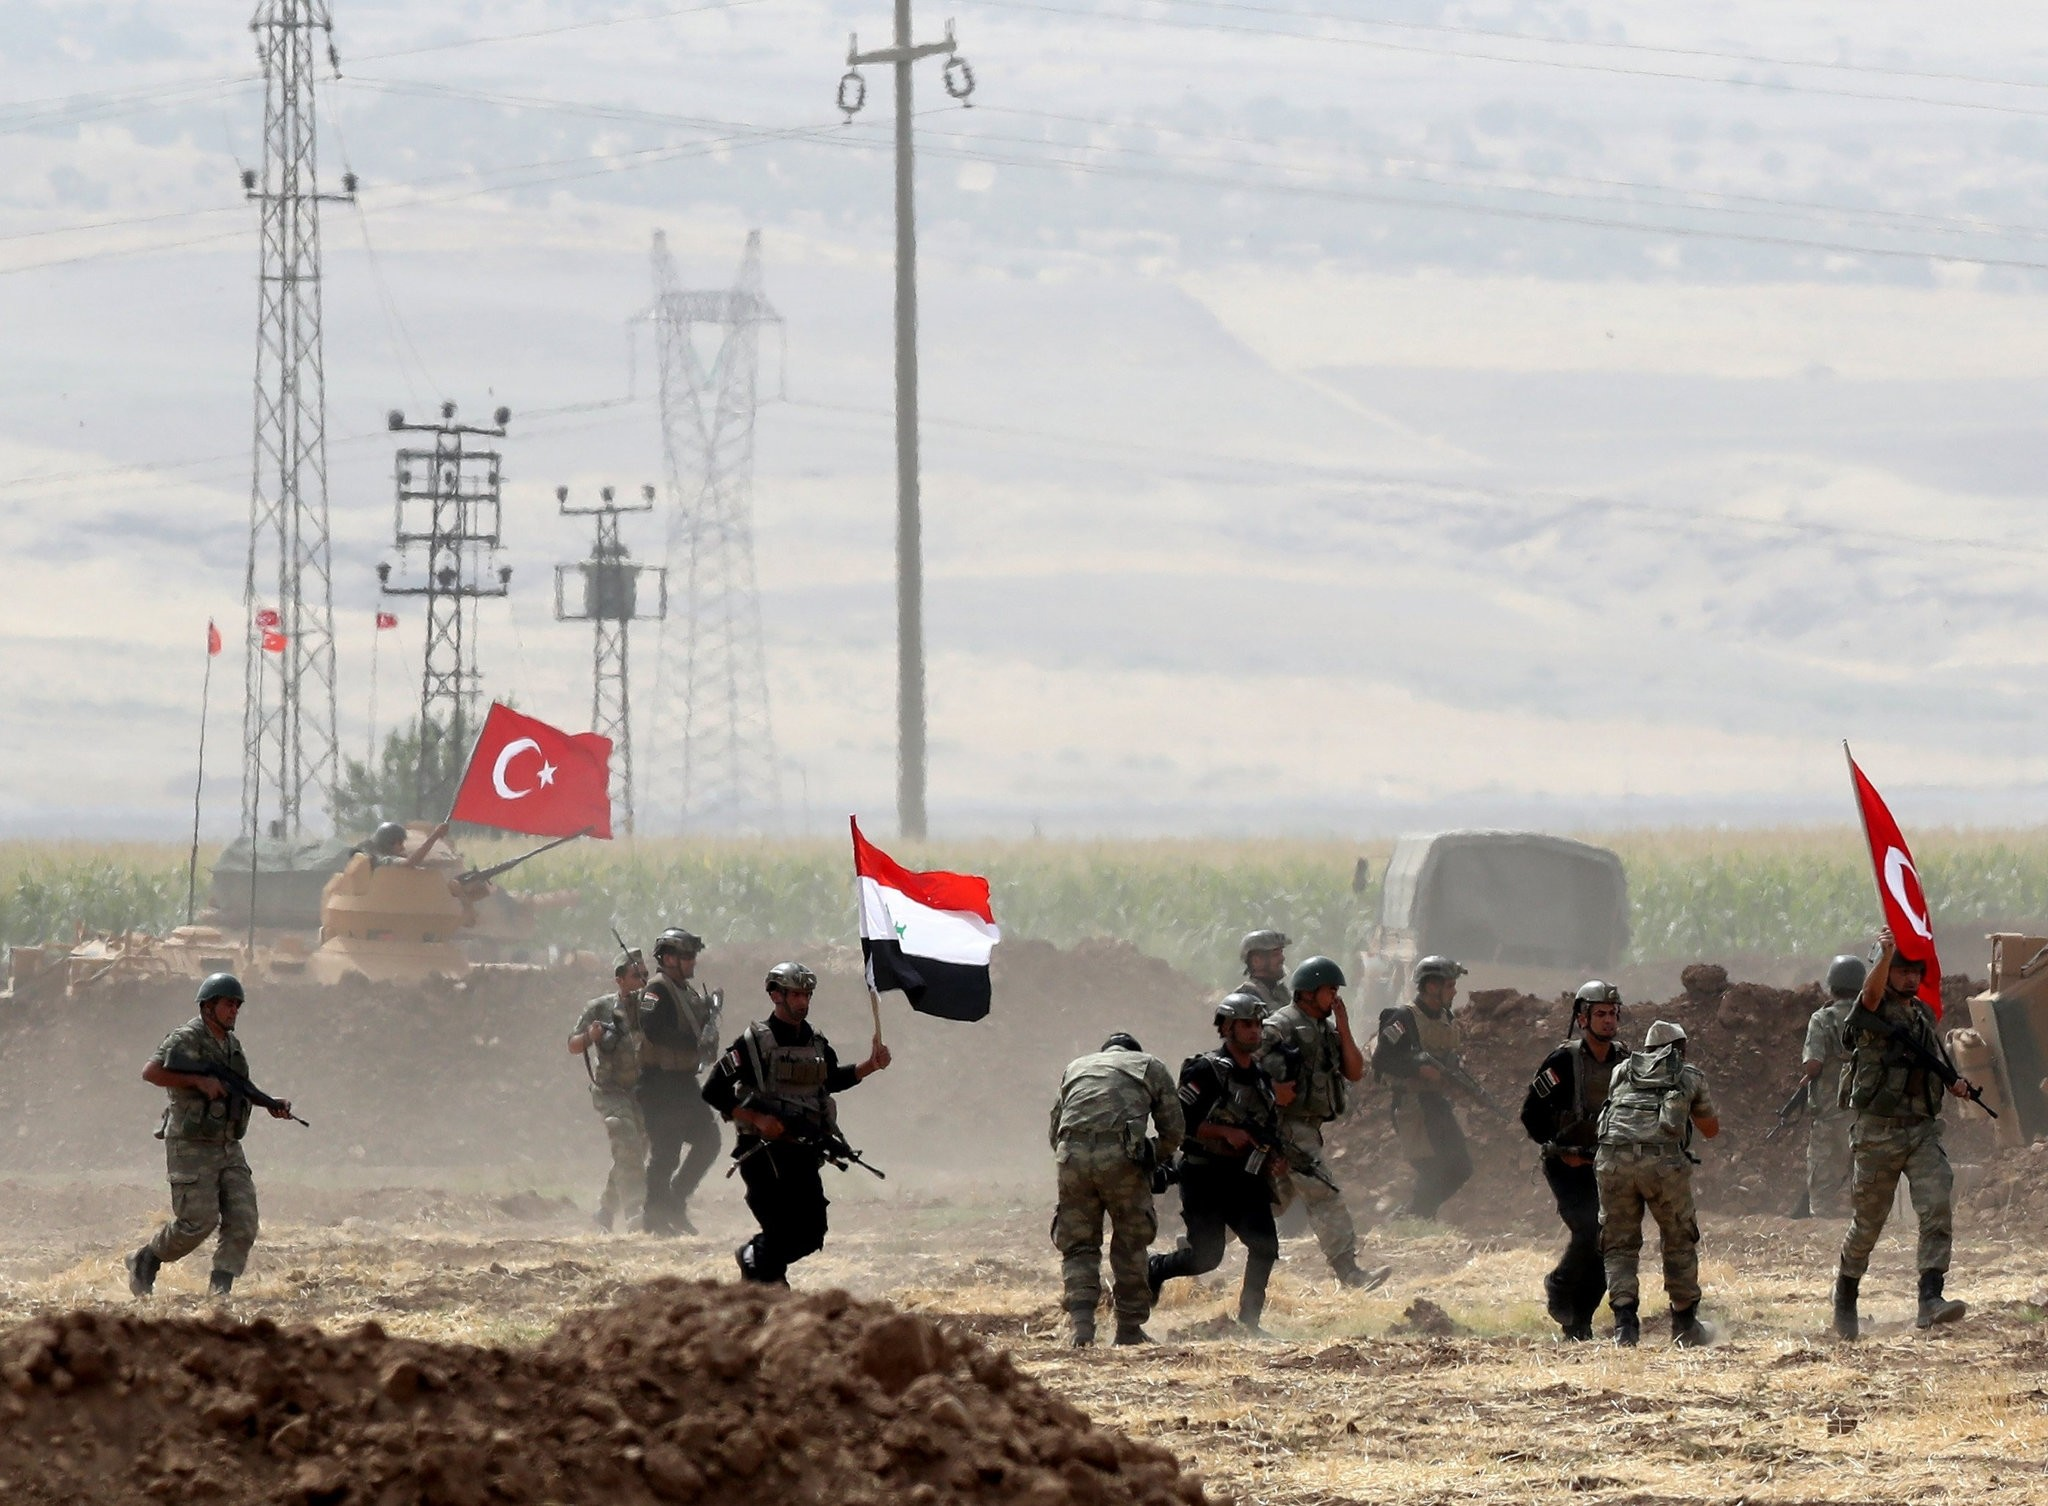 Turkish and Iraqi soldiers wave their countries' national flags during a military exercise near the Turkish-Iraqi border in the Silopi district, u015eu0131rnak, Turkey, Sept. 26.